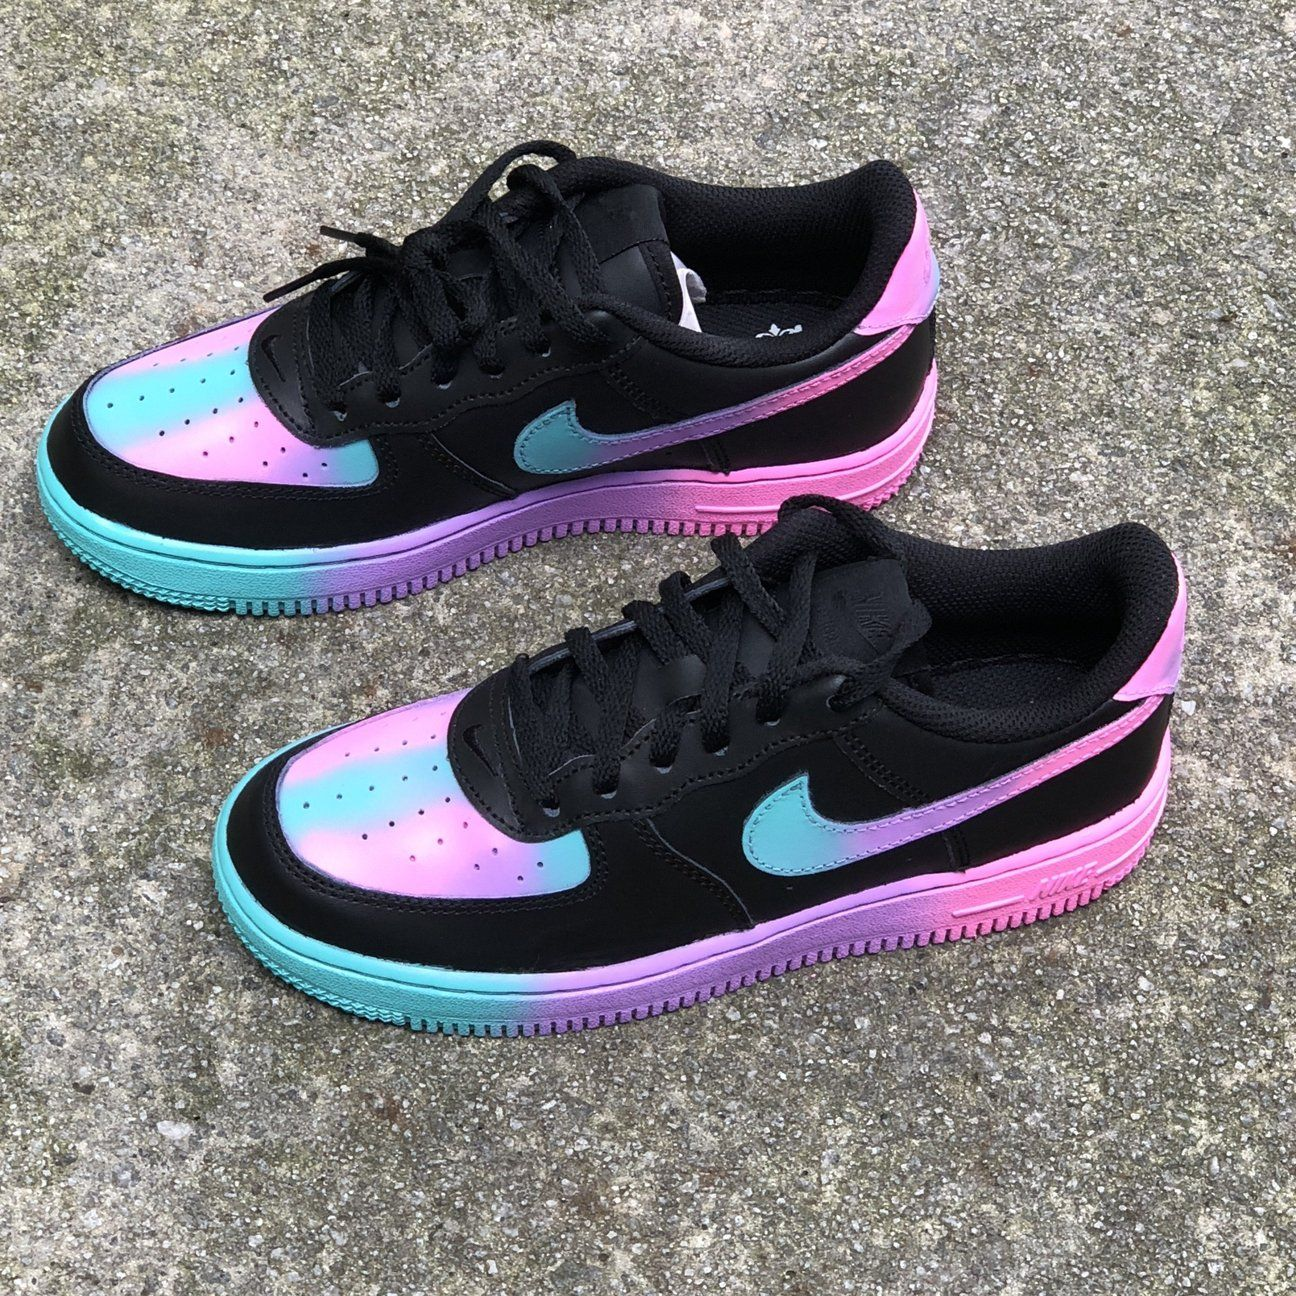 Black Unicorn Custom Painted Nike Low Air Force 1